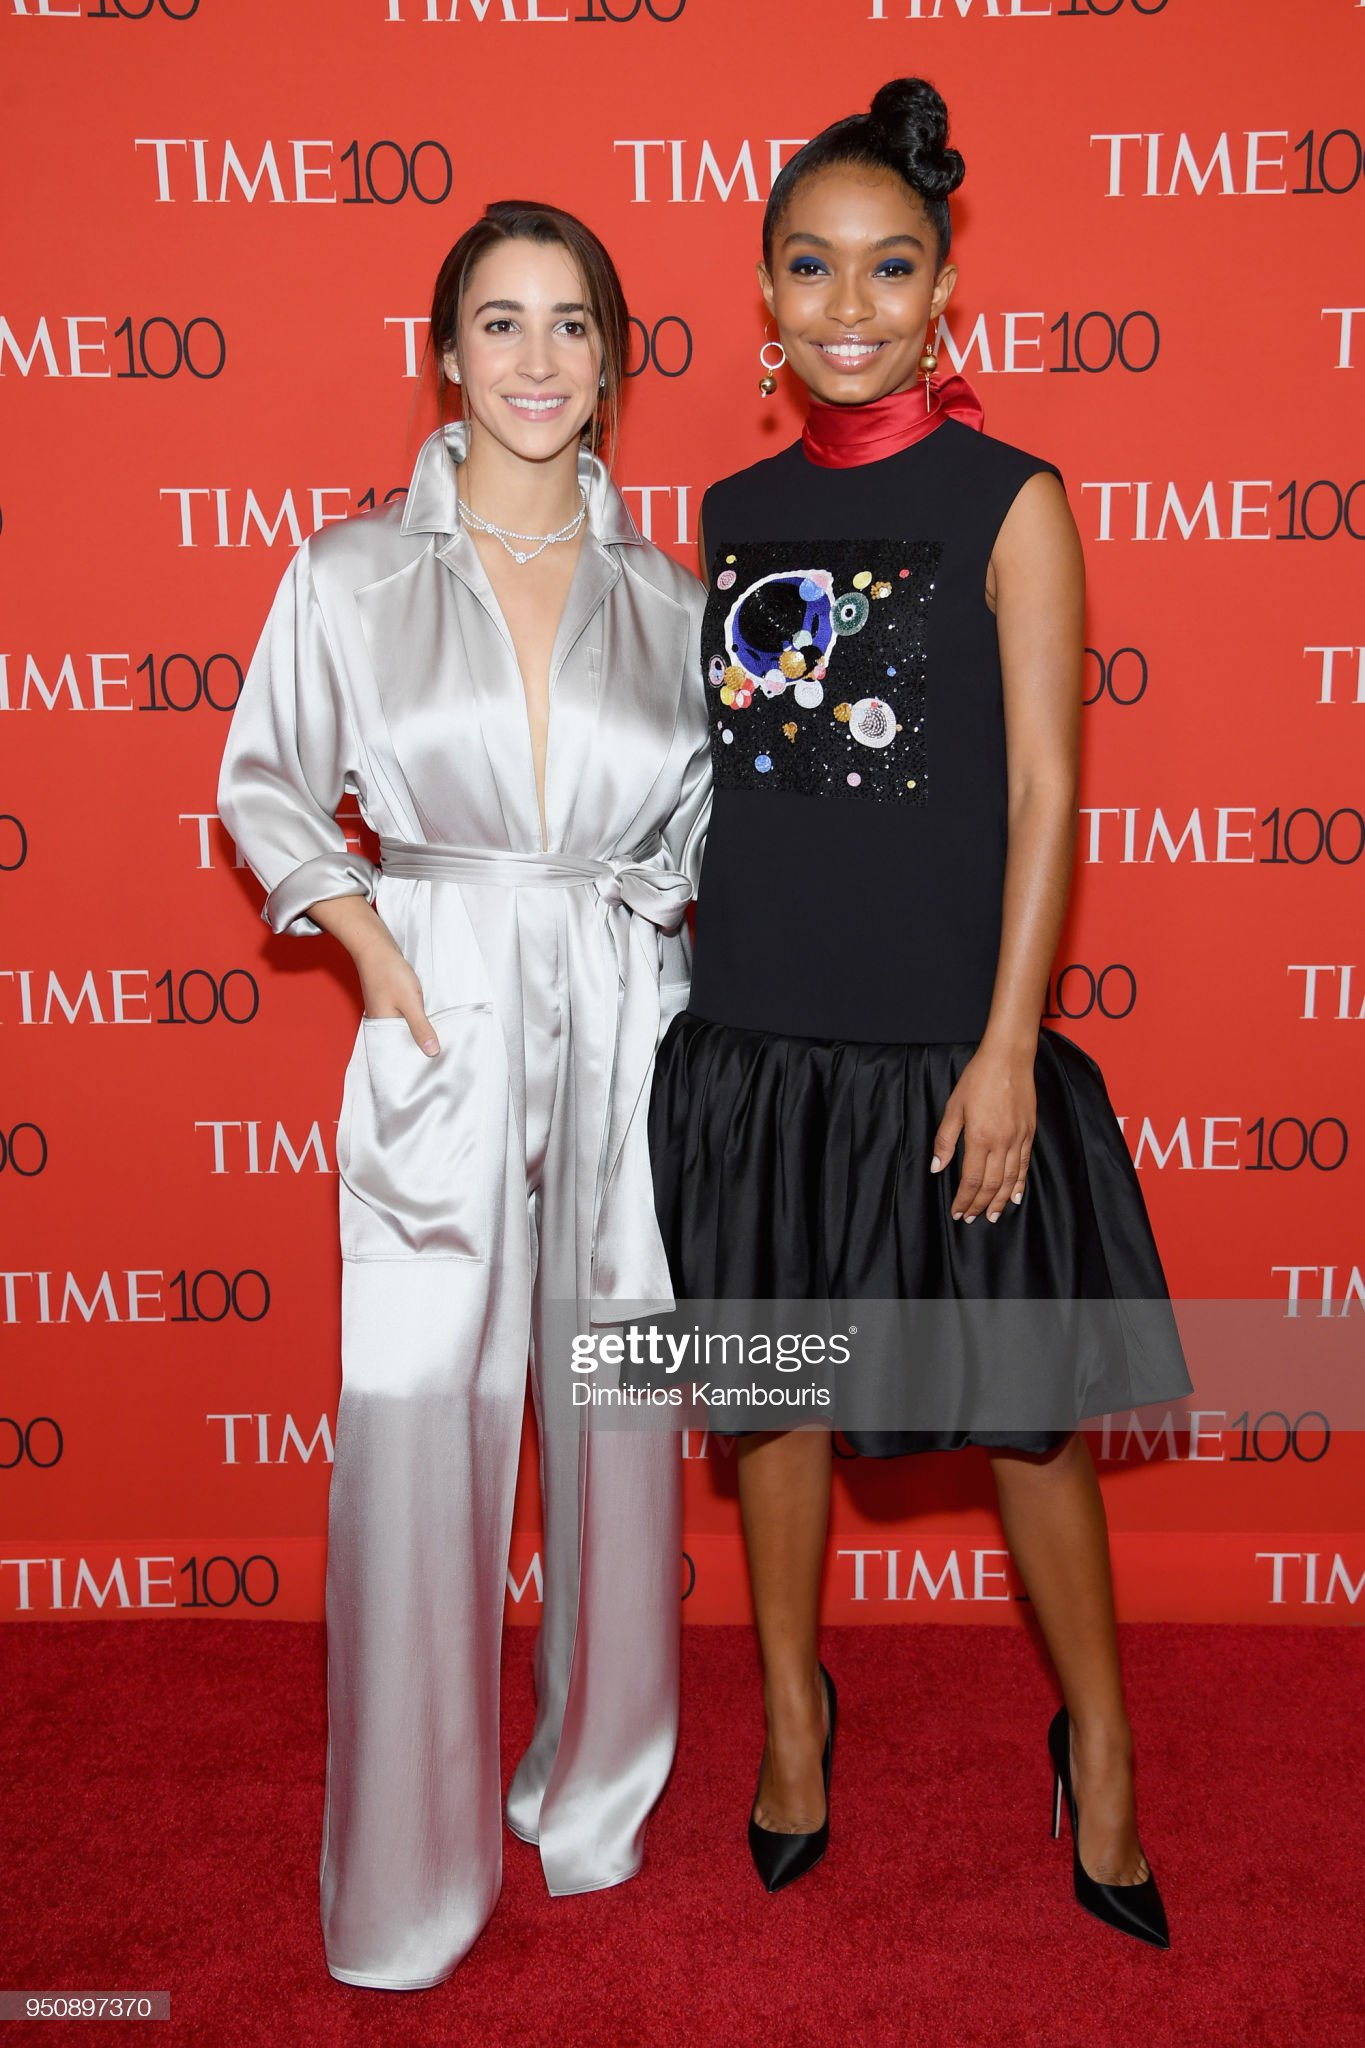 ¿Cuánto mide Aly Raisman? - Real height Olympic-gymnast-aly-raisman-and-actor-yara-shahidi-attend-the-2018-picture-id950897370?s=2048x2048